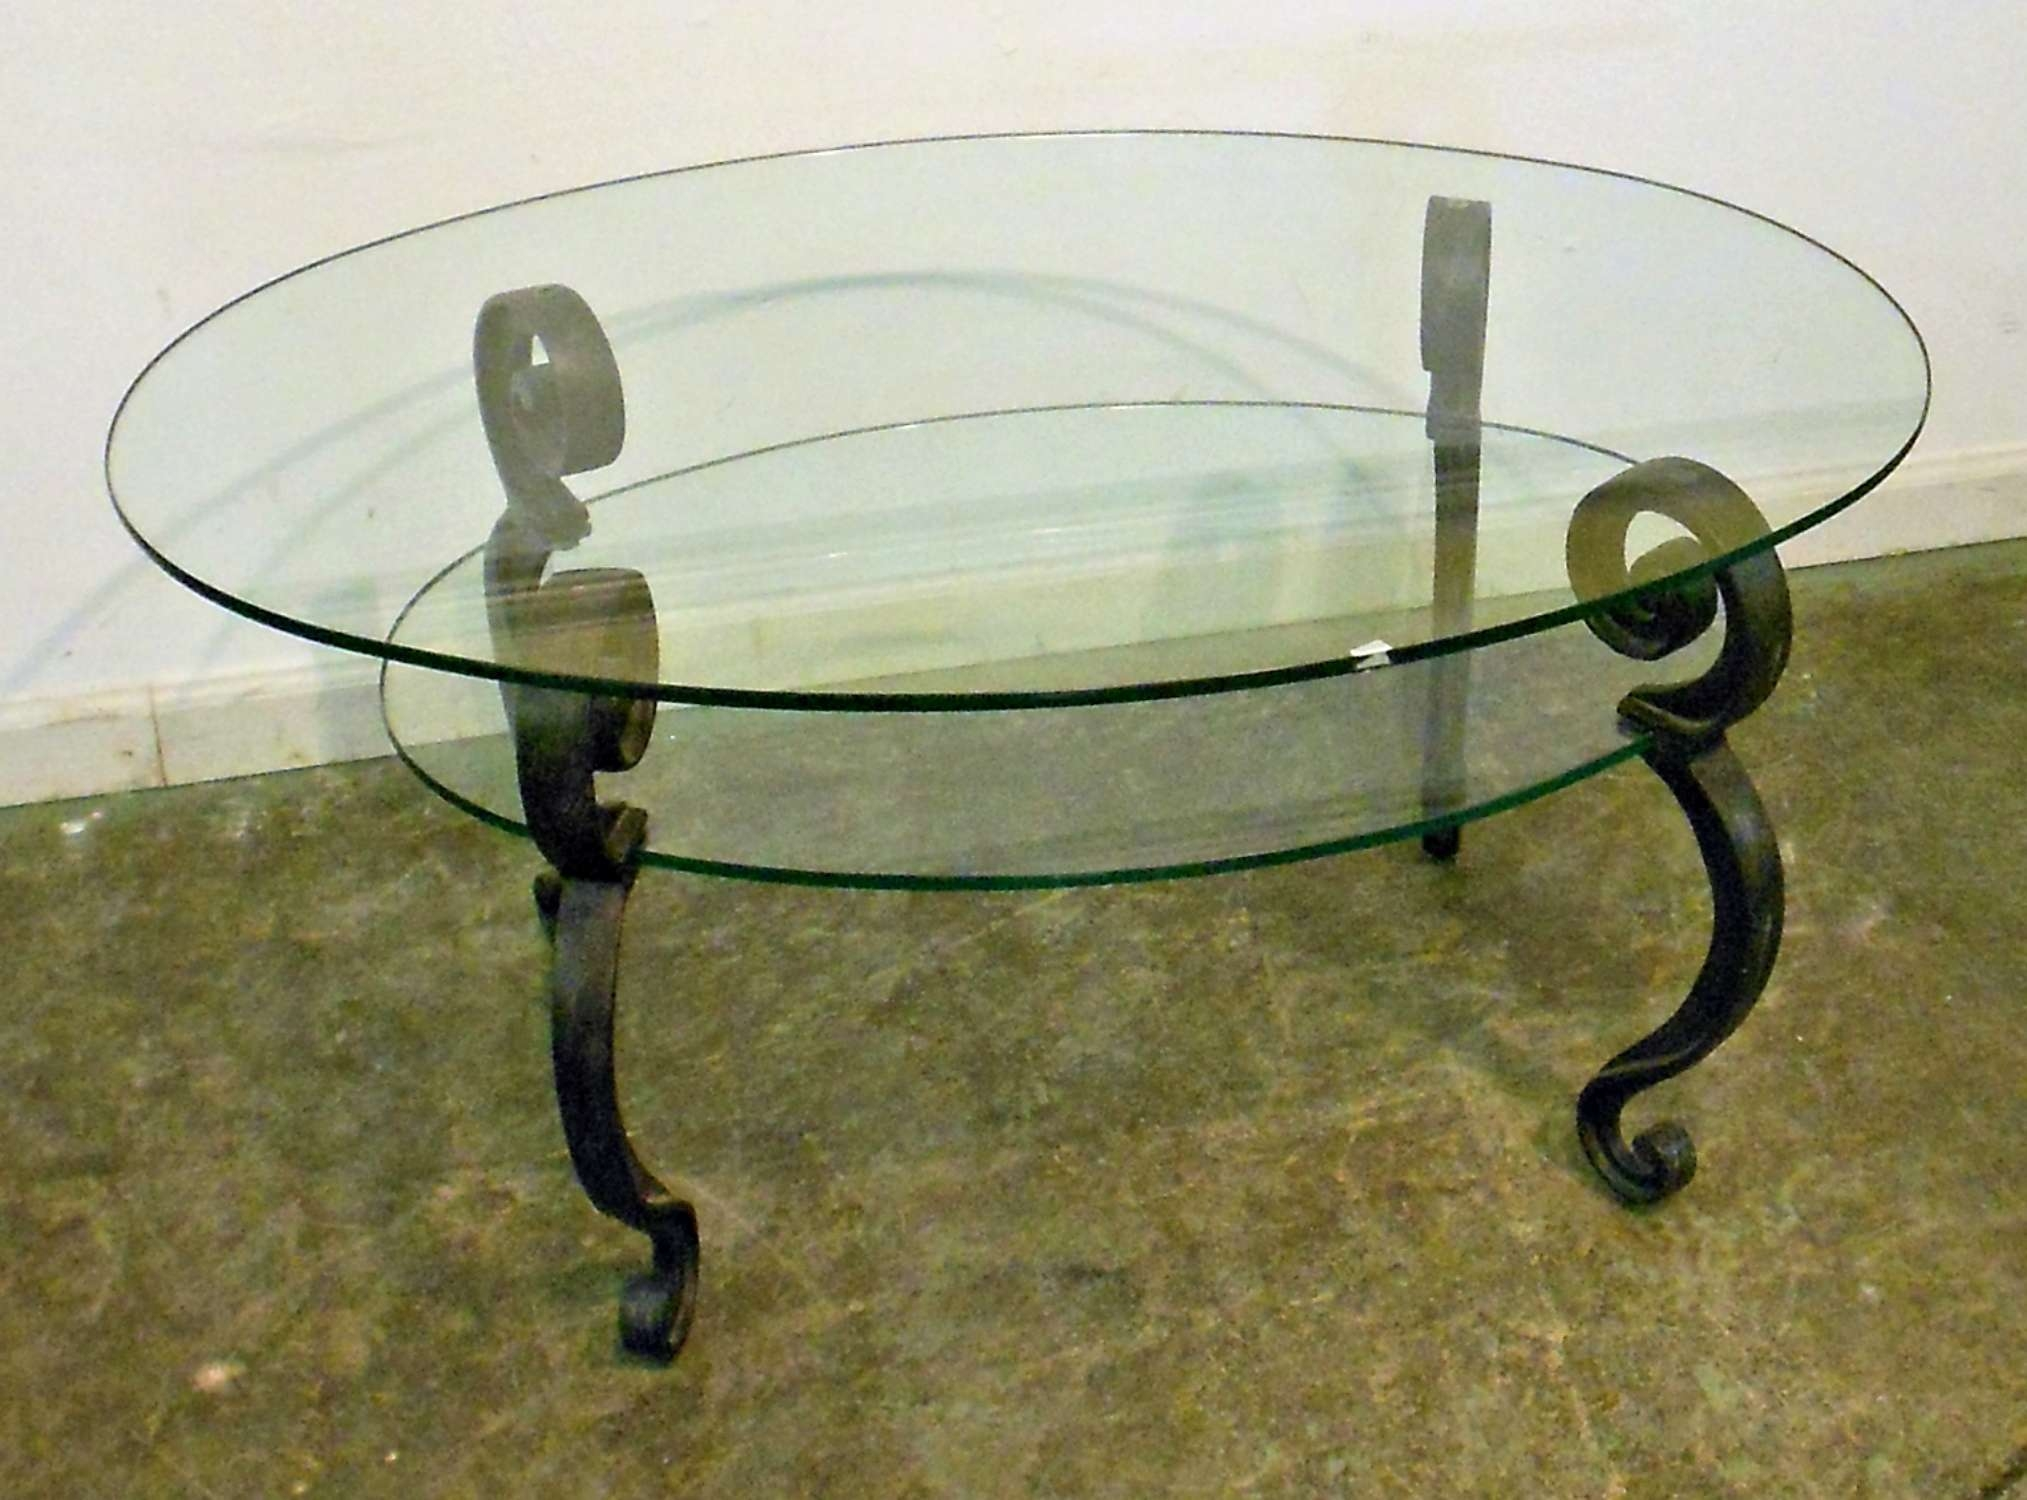 2018 Metal Oval Coffee Tables Pertaining To Vintage Glass Top Coffee Table With Black Metal Legs And Shelves (View 8 of 20)